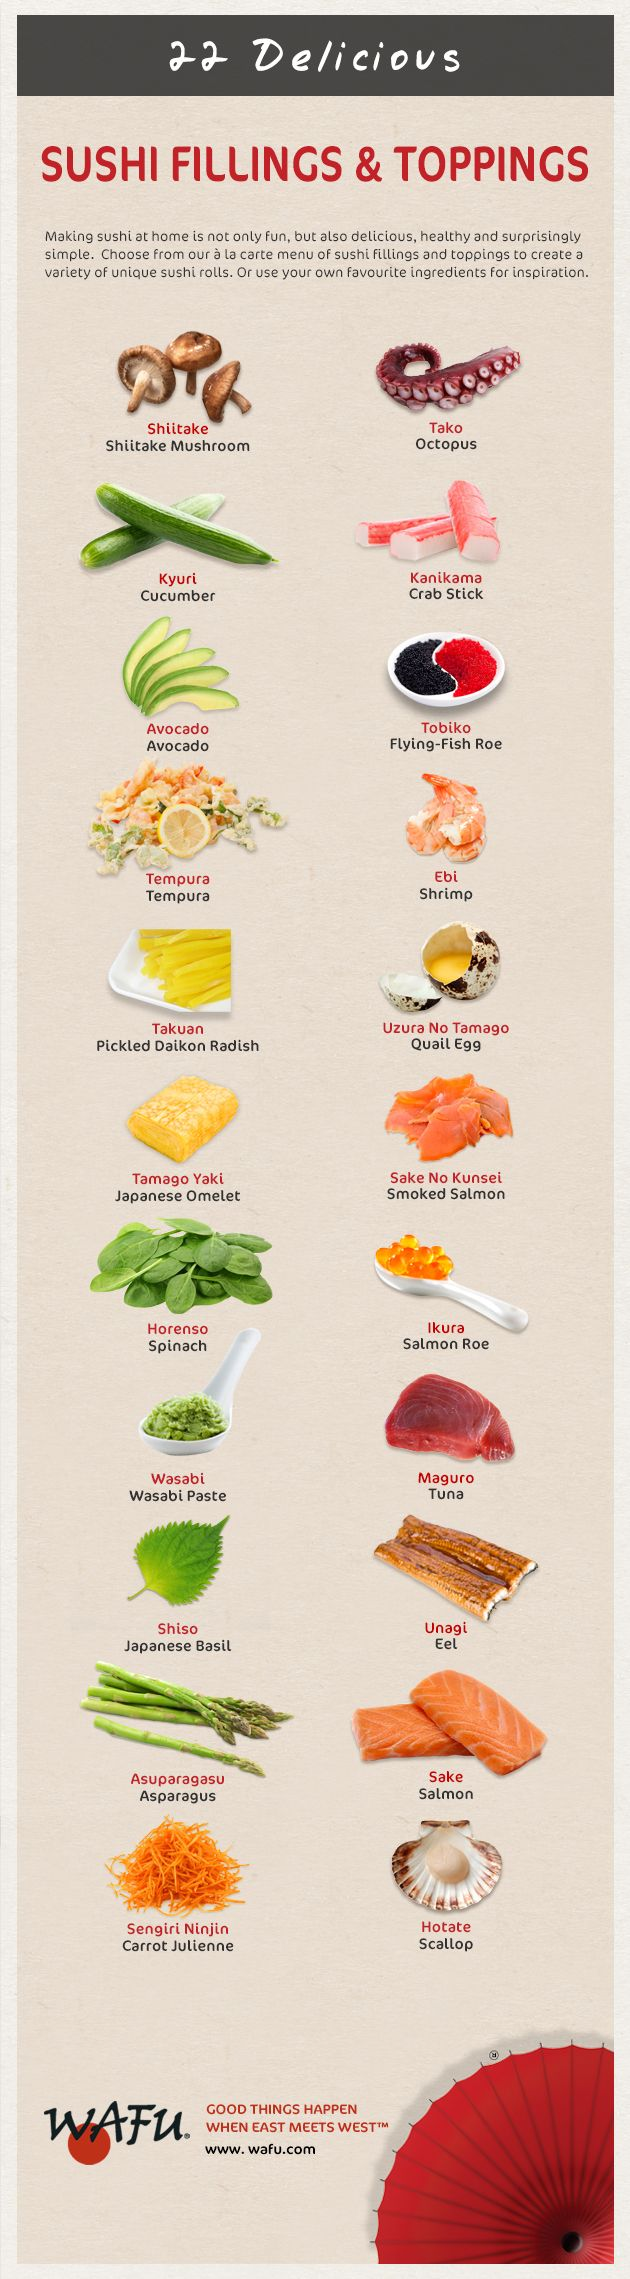 sushi-ingredients-infographic (Ingredients Design)